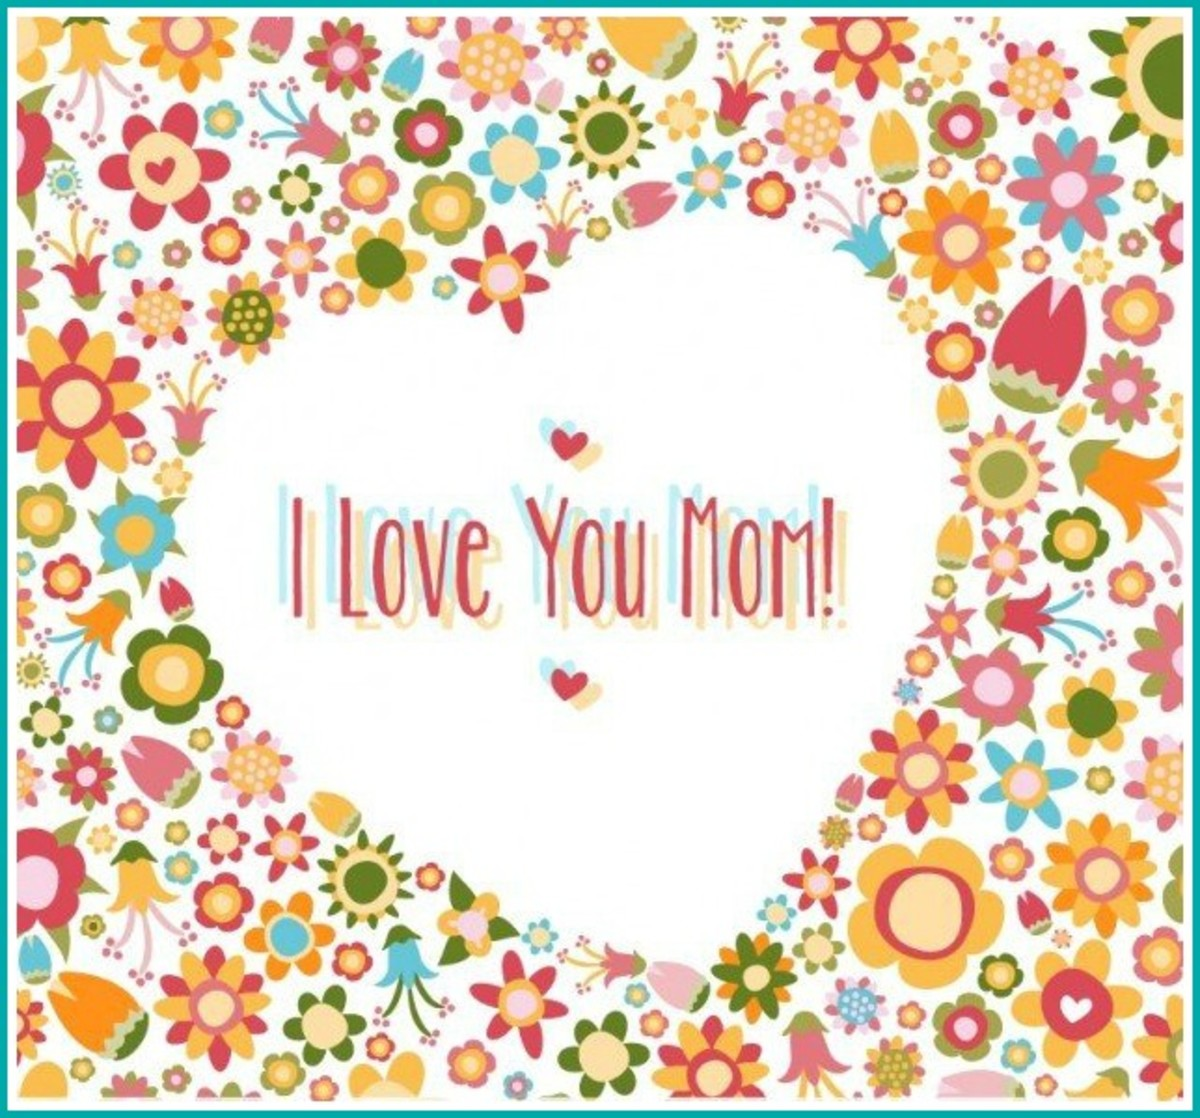 'I Love You Mom!' Card with Heart and Flowers